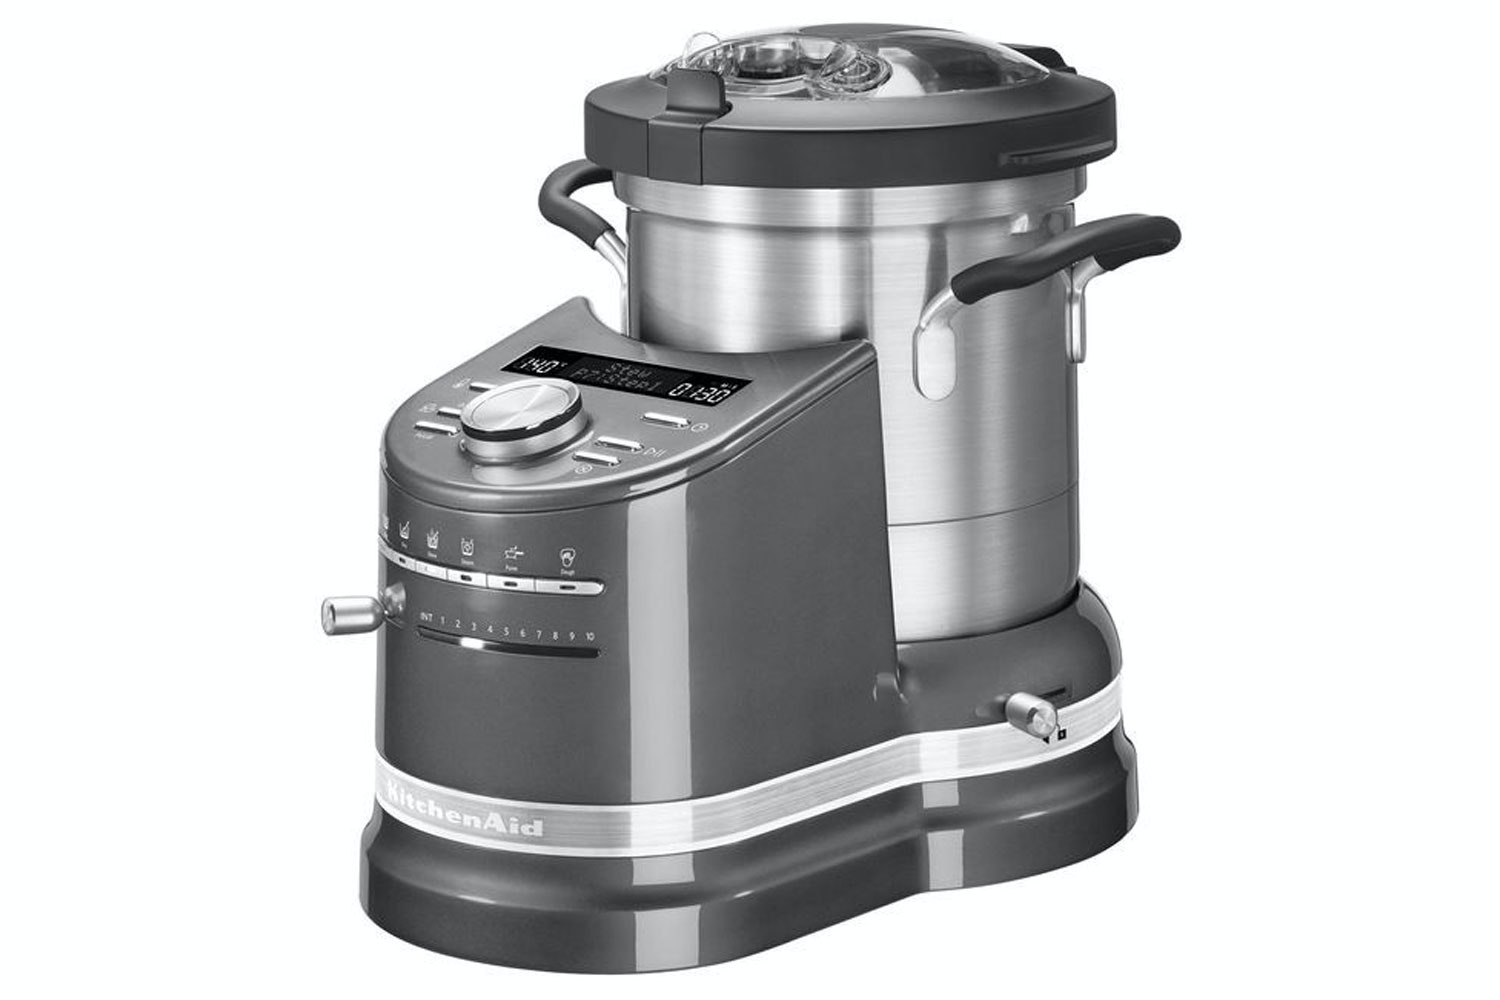 KitchenAid Artisan Cook Processor | Medallion Silver